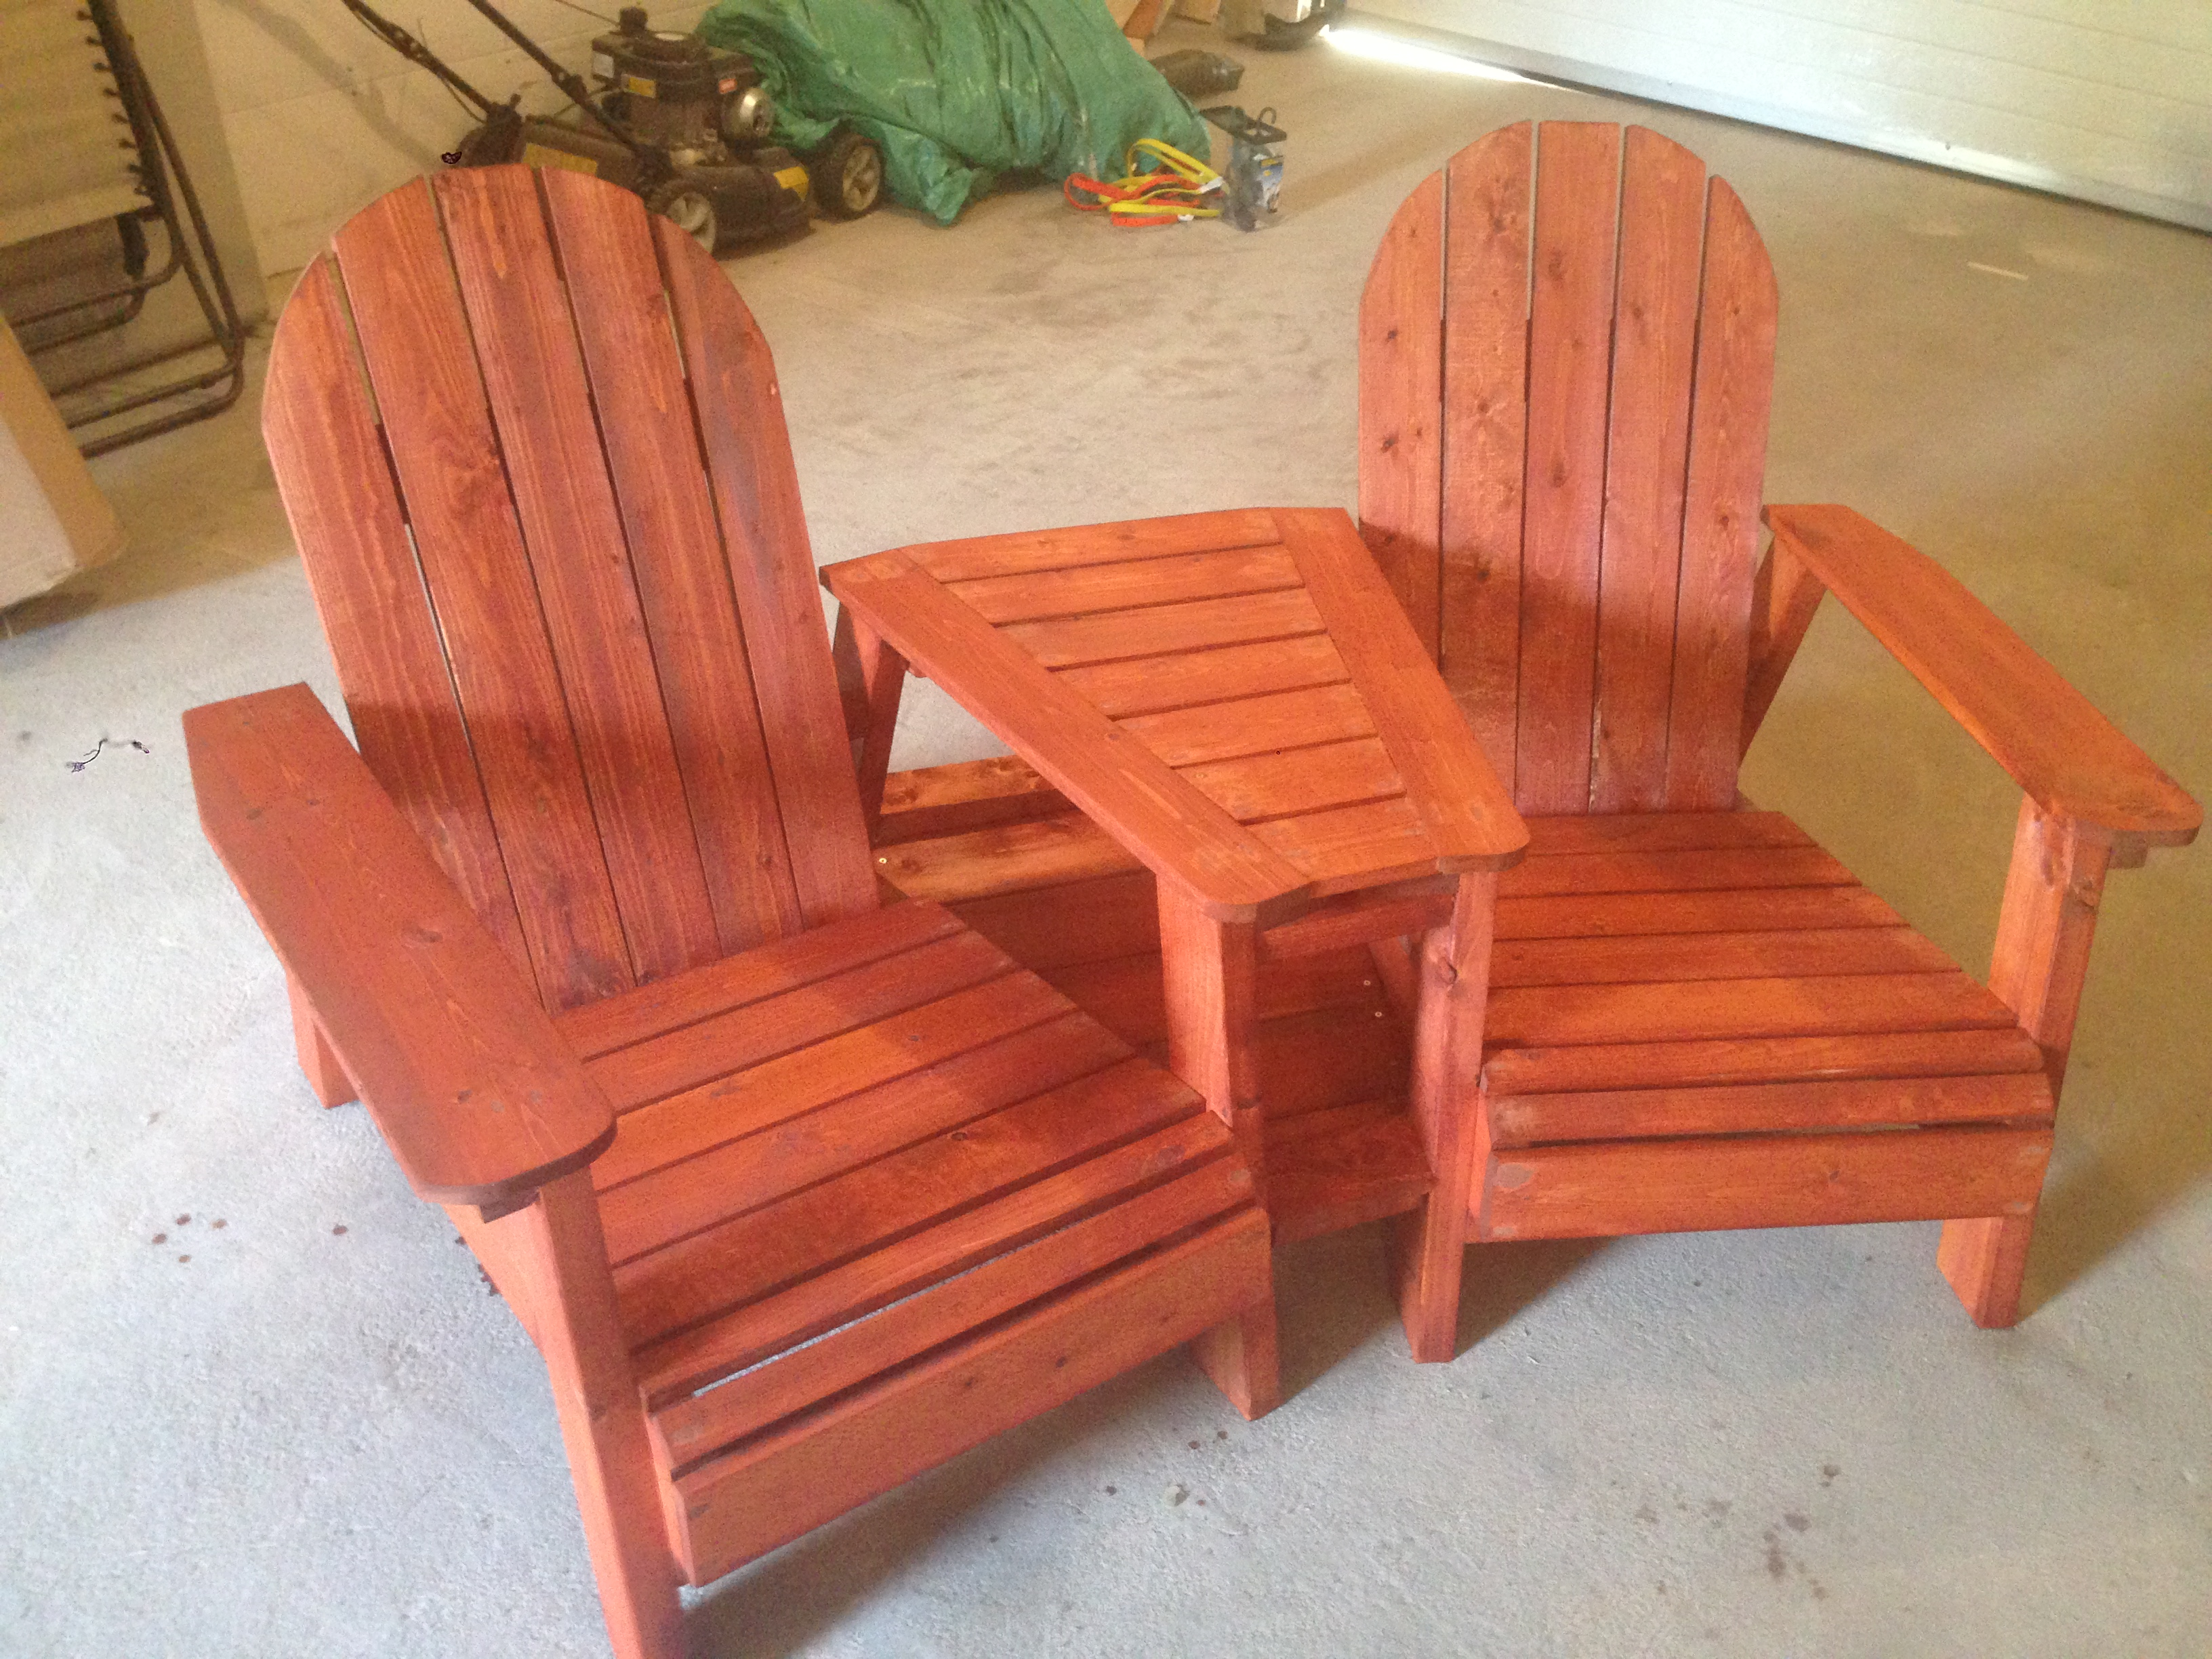 Arondyke Chairs Ana White Adirondack Chairs With Table Diy Projects